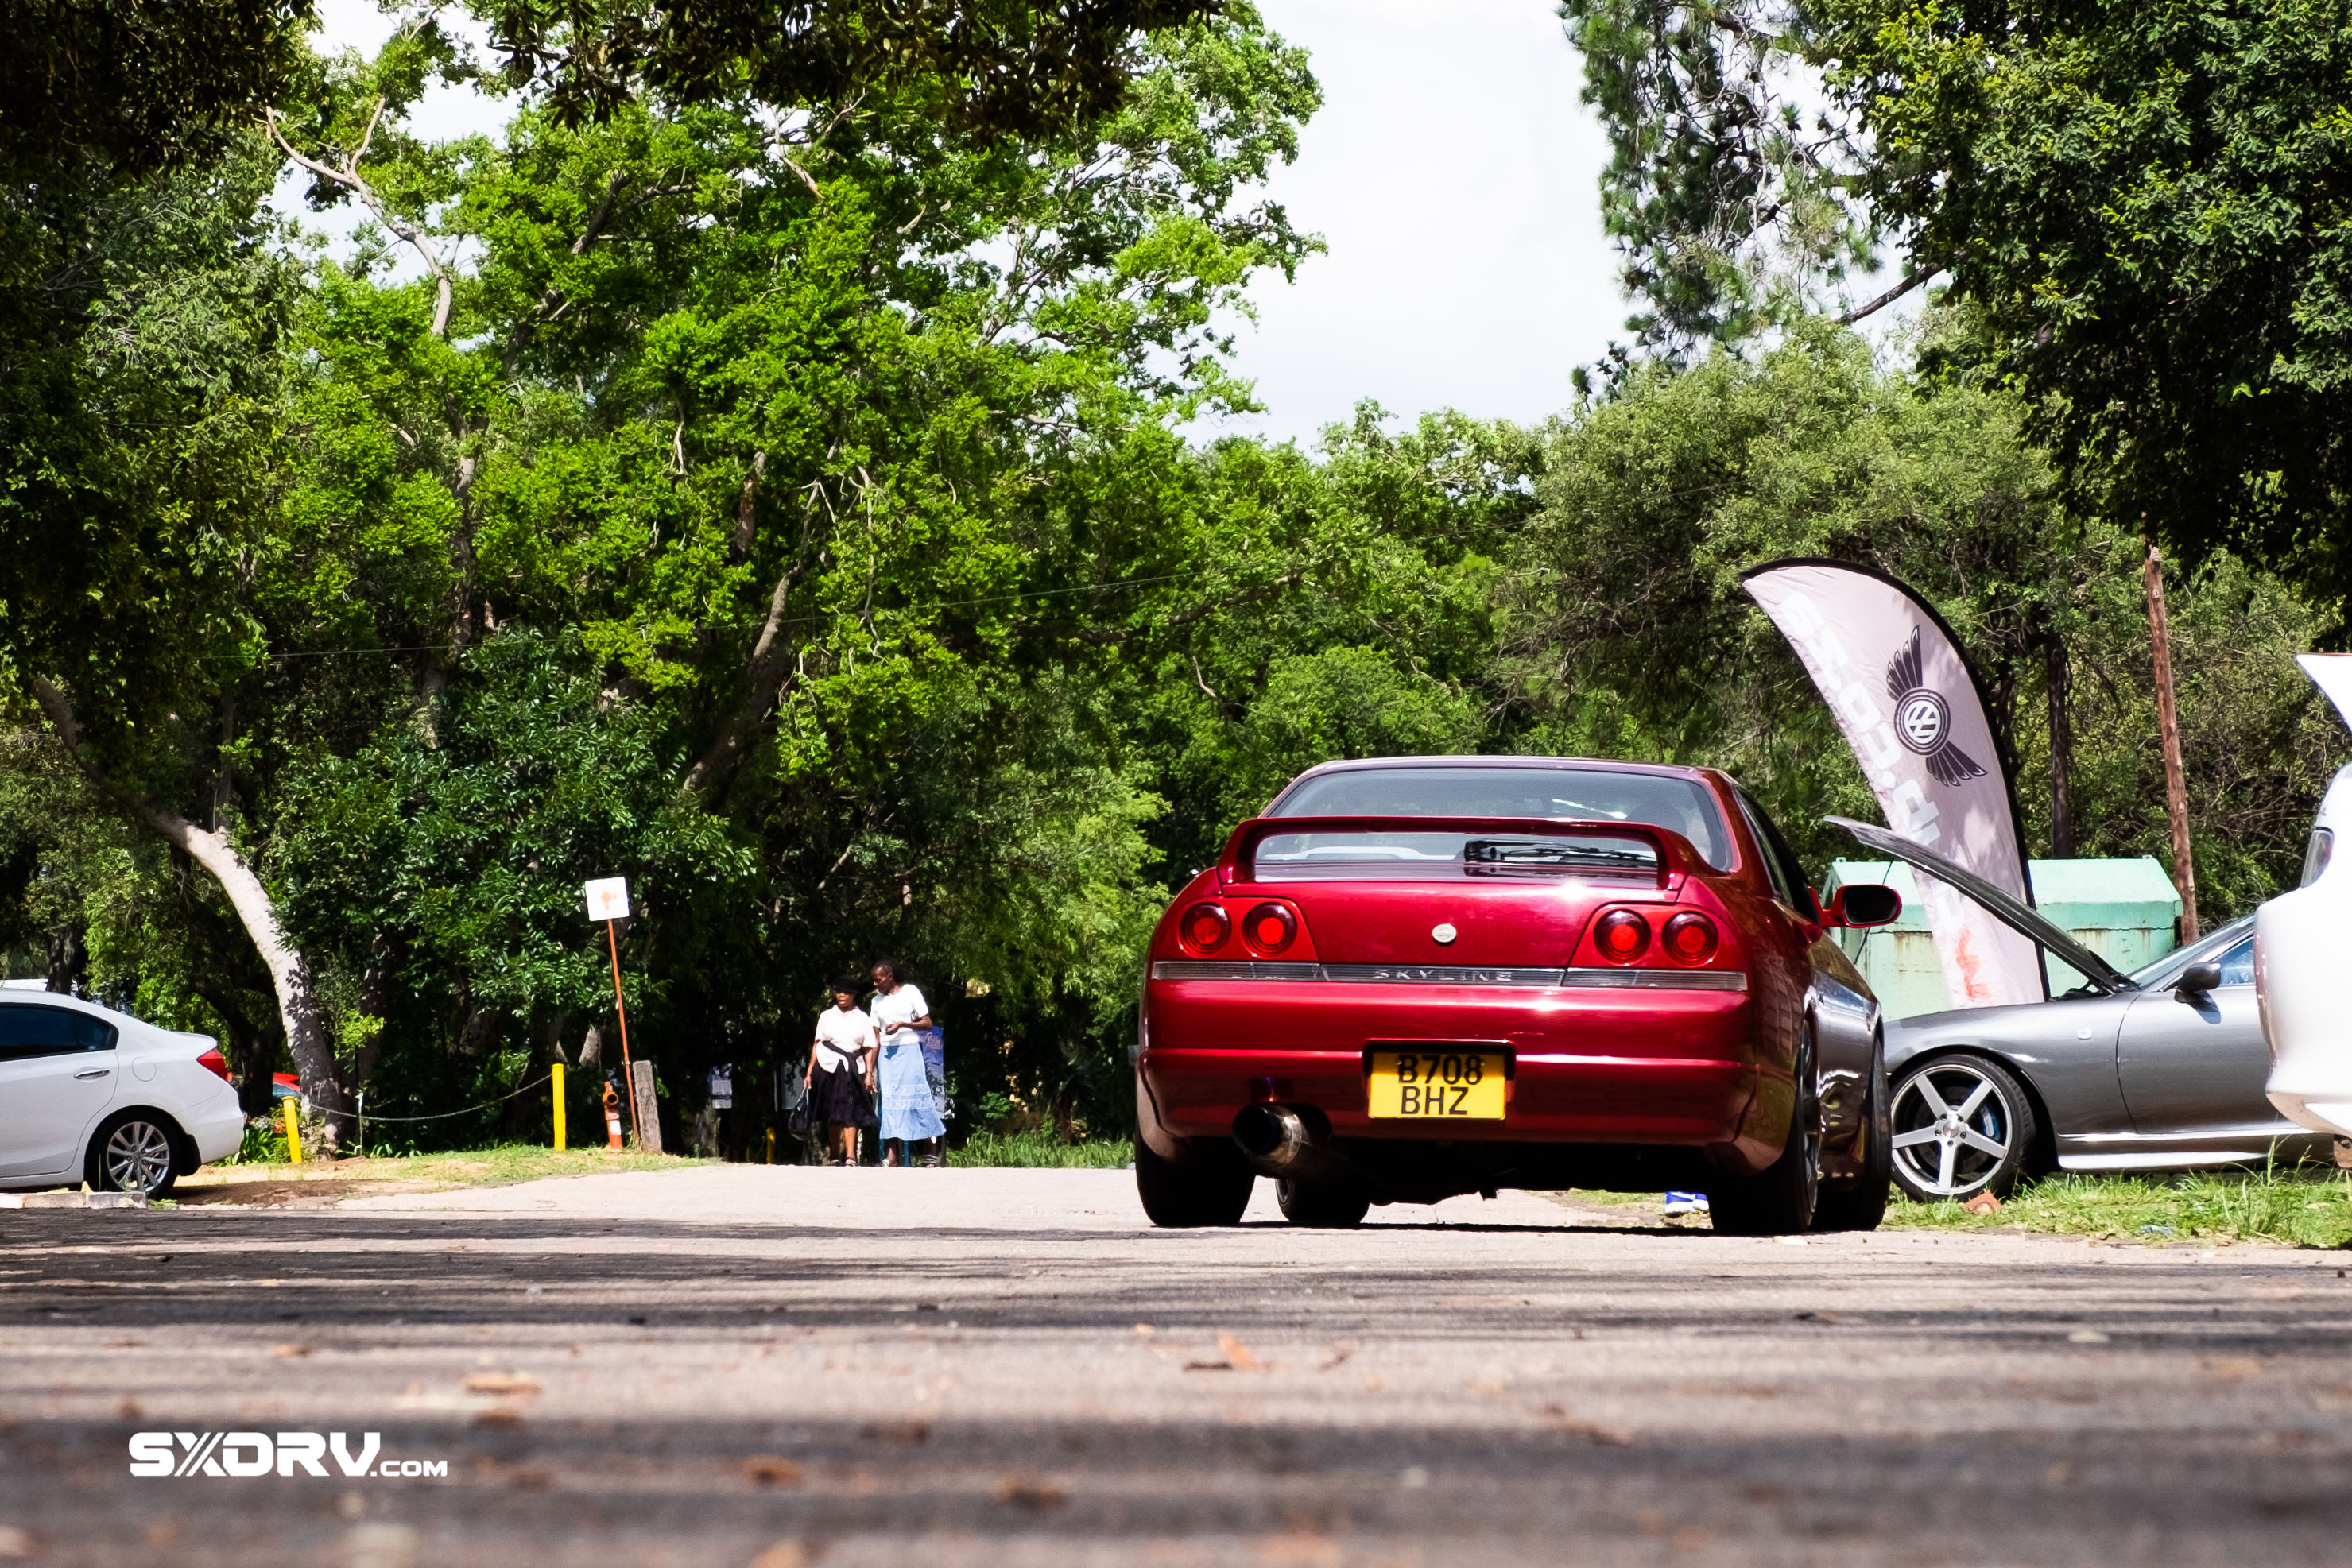 Cars,Automotive,vwcsa,volkswagen club,south africa,puppies in the park,woodrock,animal,rescue,park off,nissan,350z,mazda rx8,porsche,cayman,events,event,news,